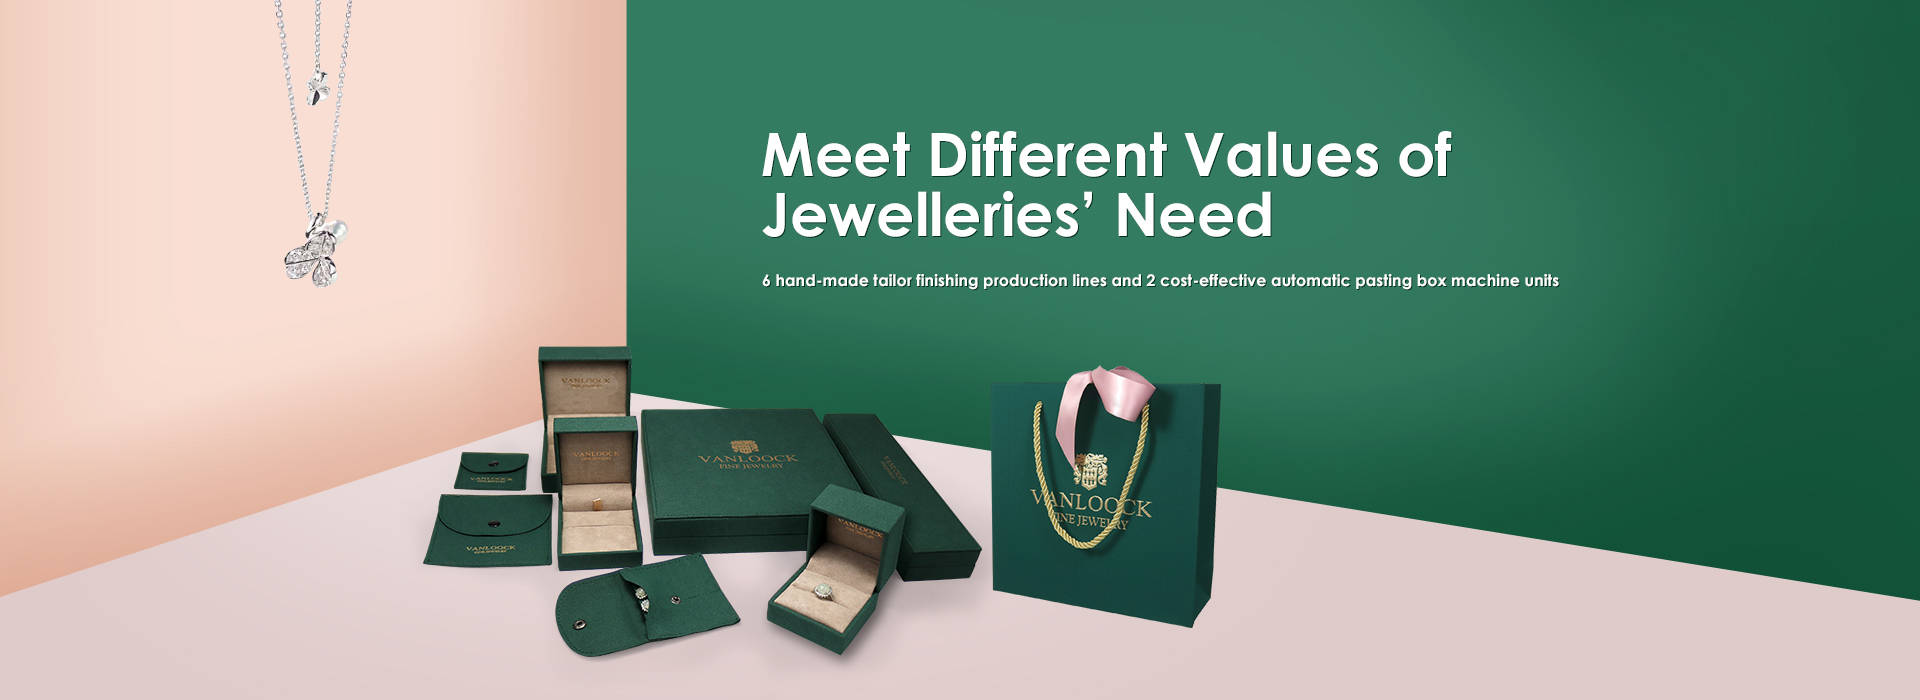 Multipack: Meet different values of jewelleries' need